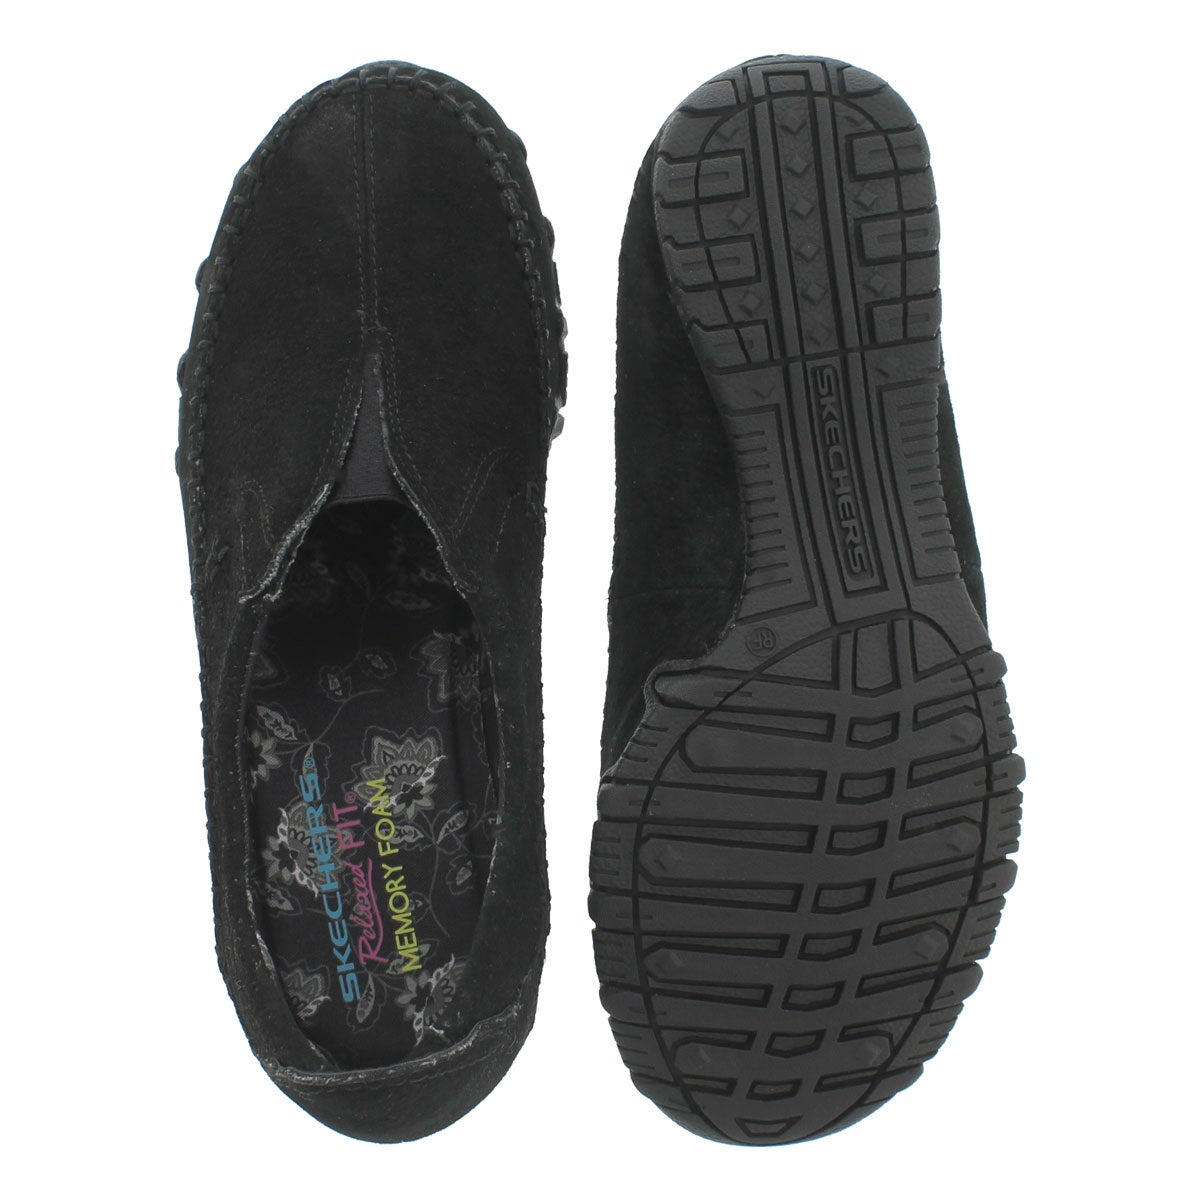 Lds Bikers Freeway blk slip on moc